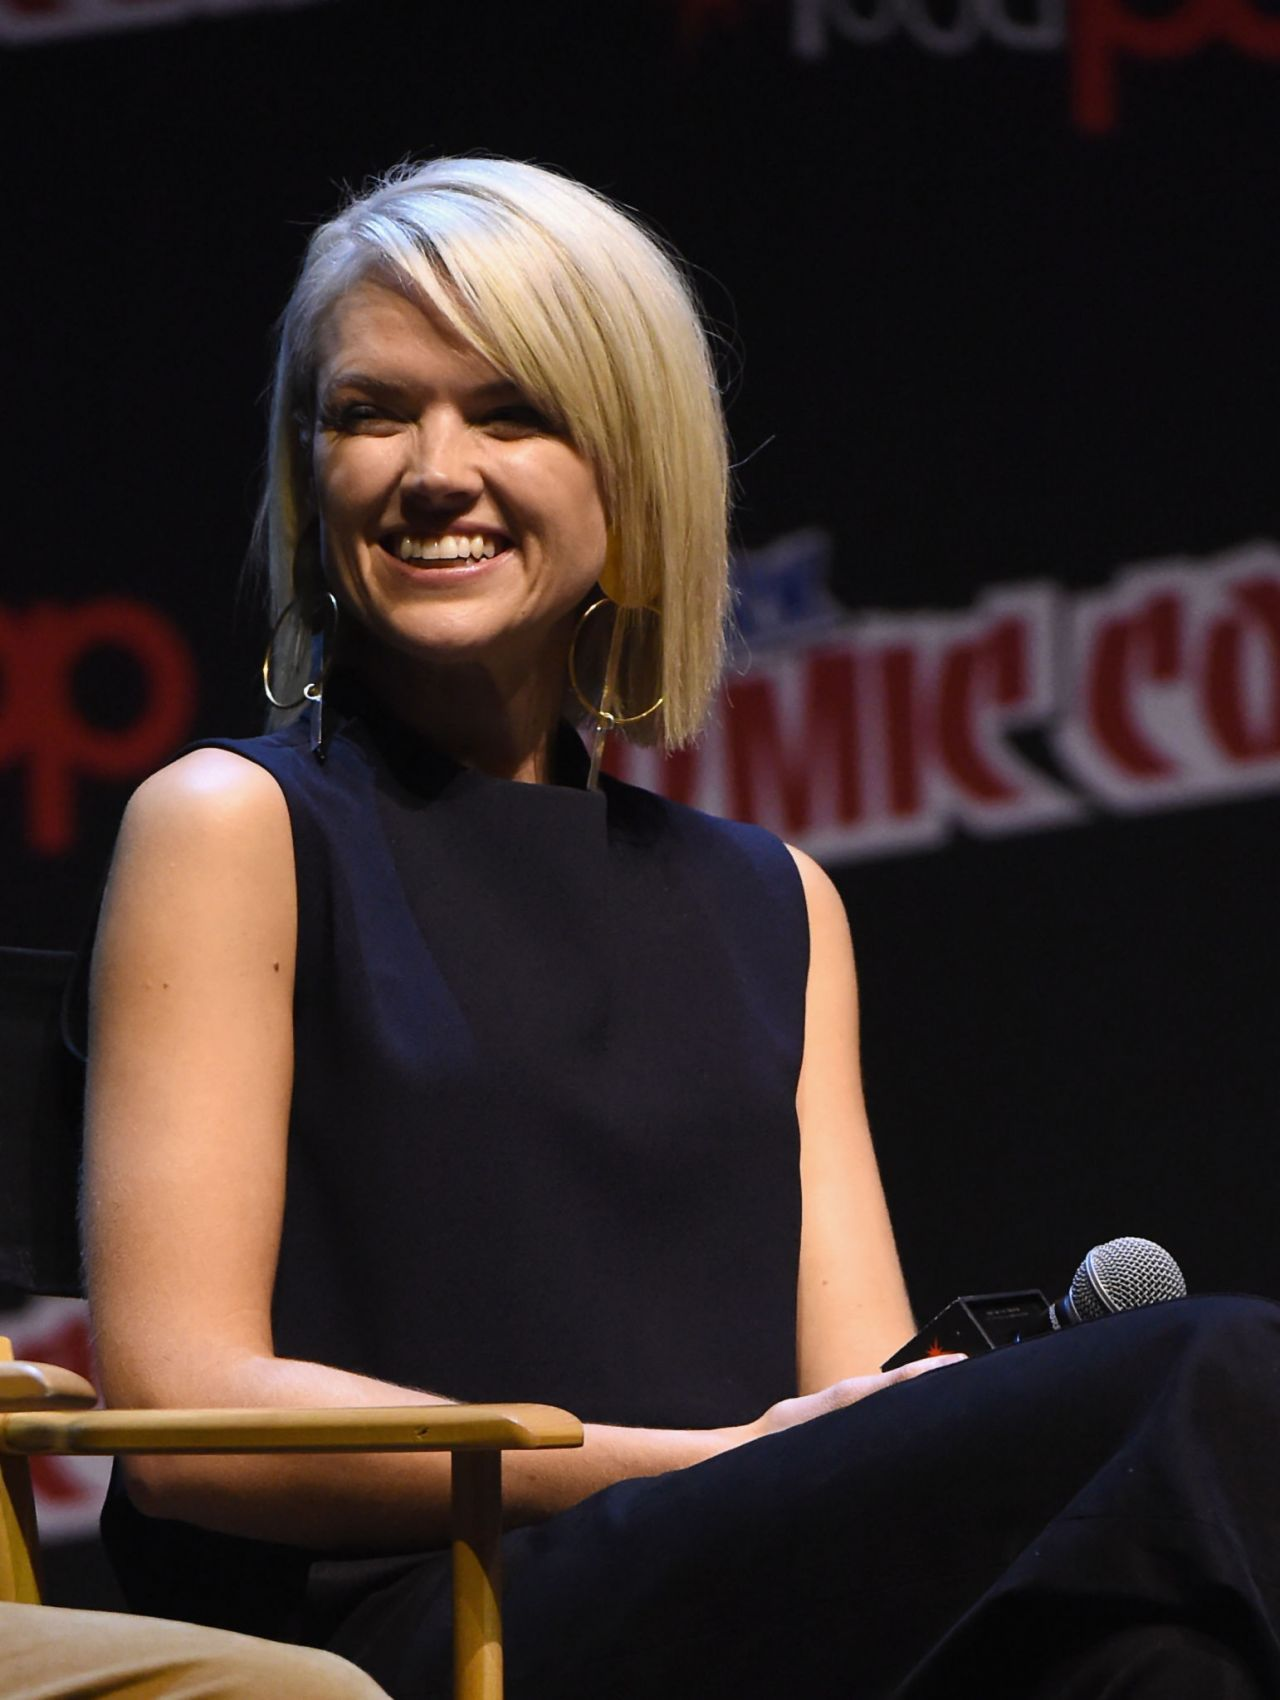 Erin richards gotham panel at new york comic con naked (15 photos), Sideboobs Celebrity photo